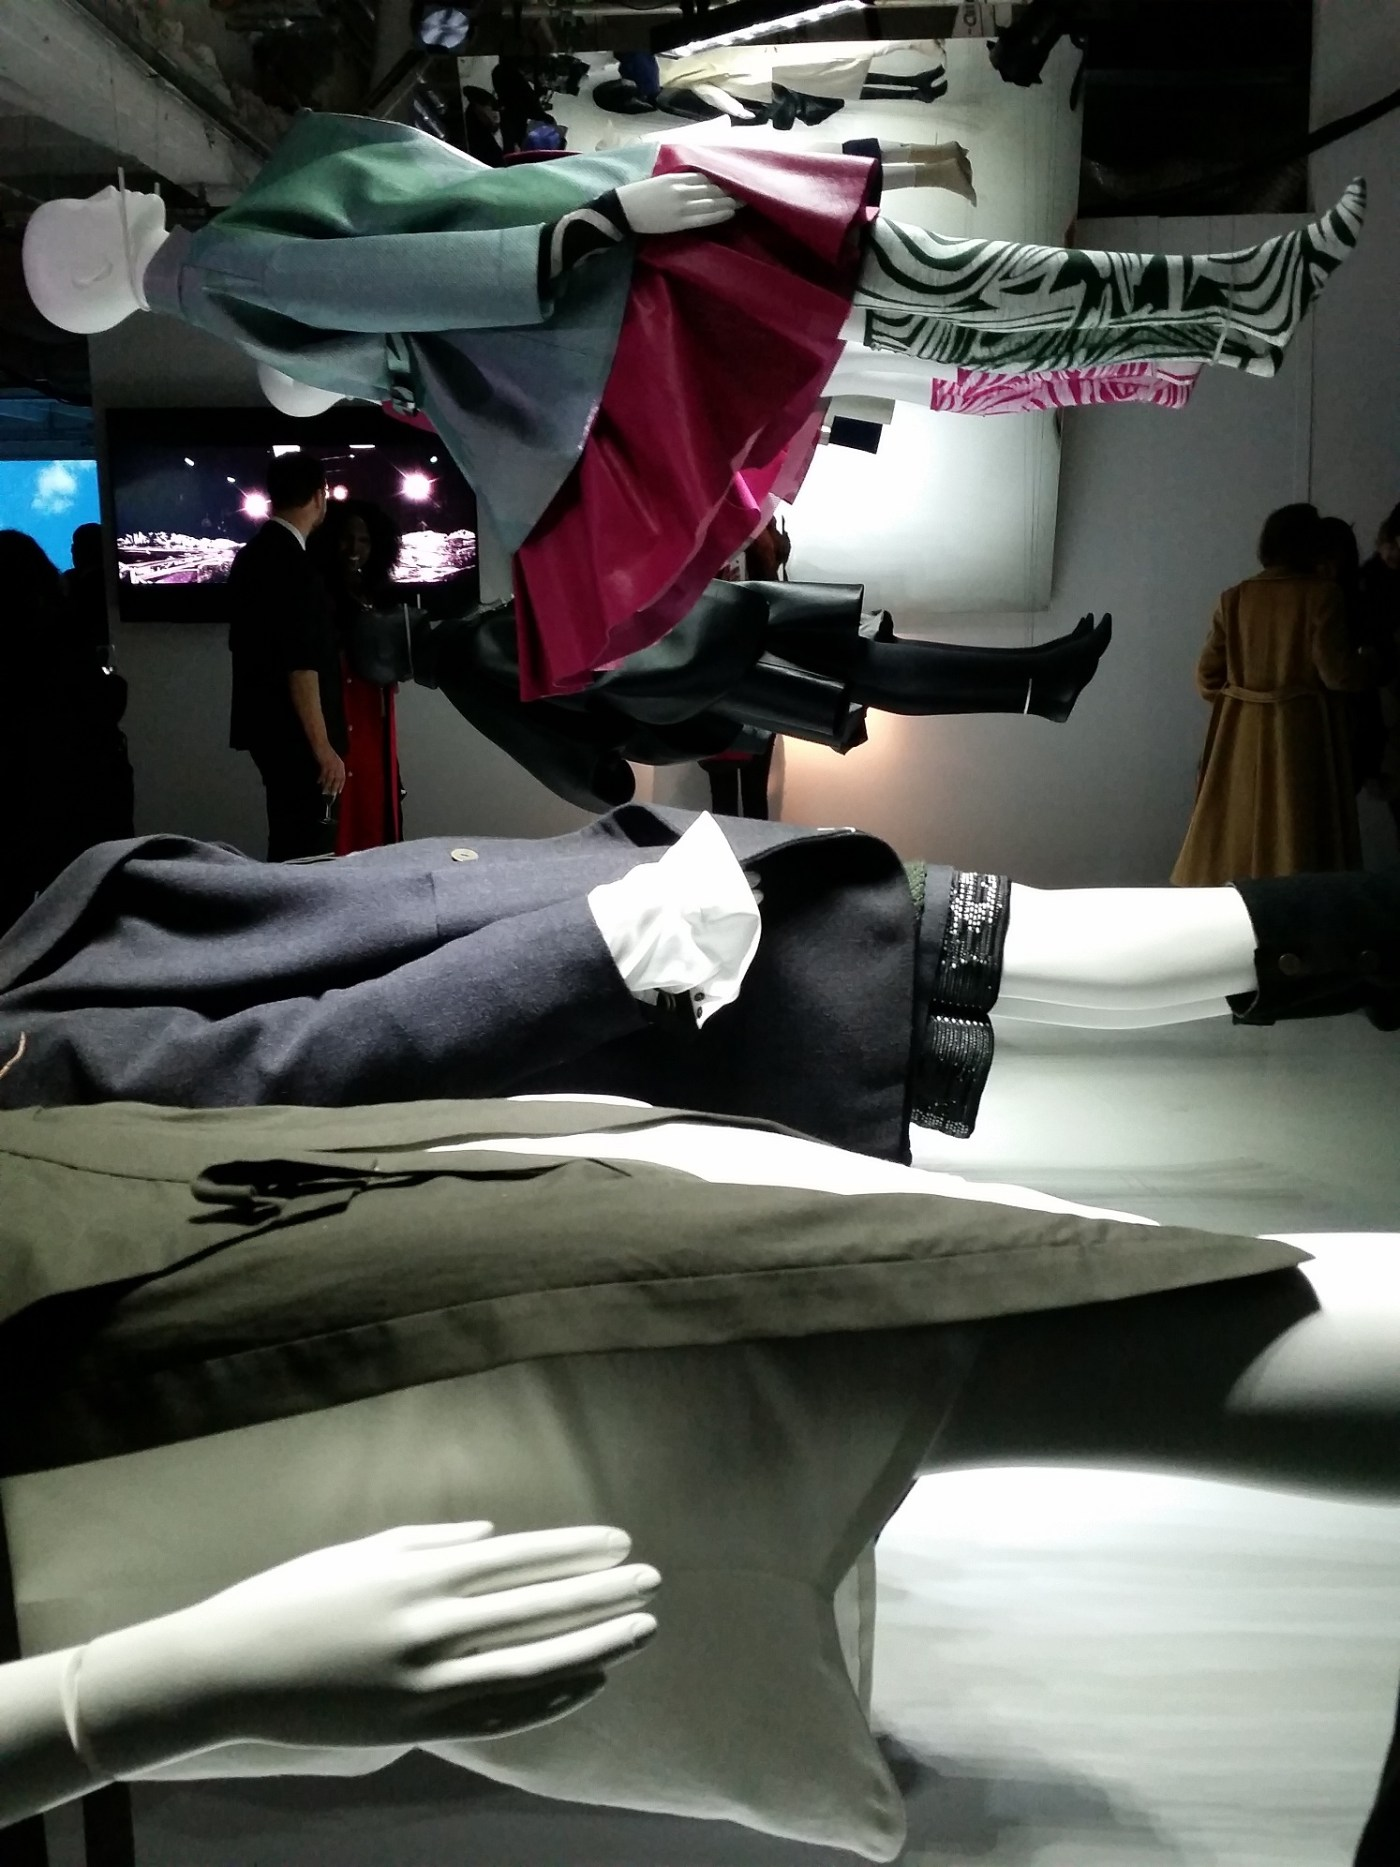 Photo taken at the private view of LCF's MA16 Exhibition